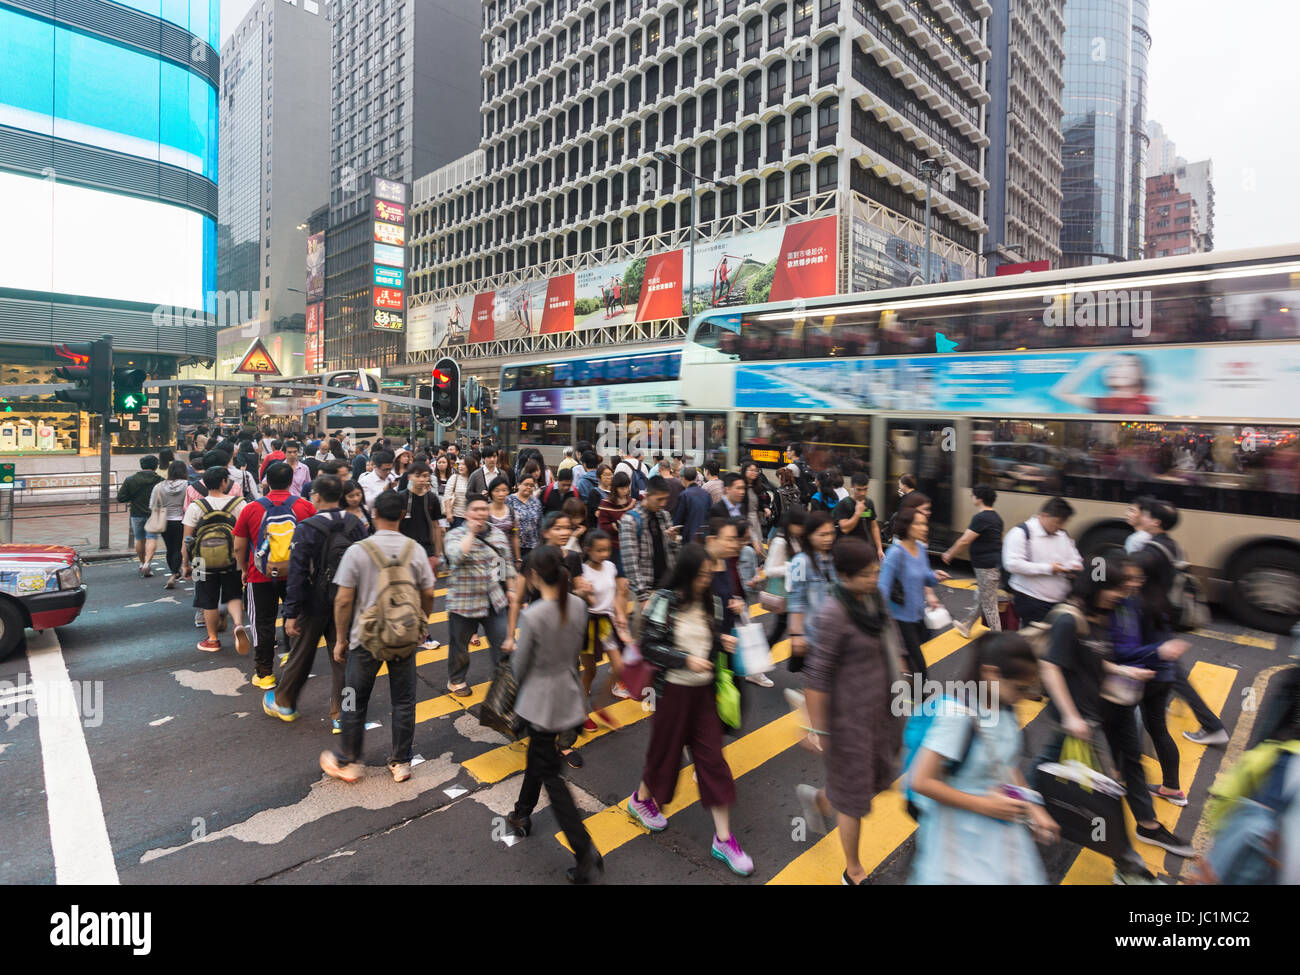 HONG KONG - APRIL 26, 2017: People, captured with blurred motion, cross Nathan road in the very crowded Mong Kok - Stock Image